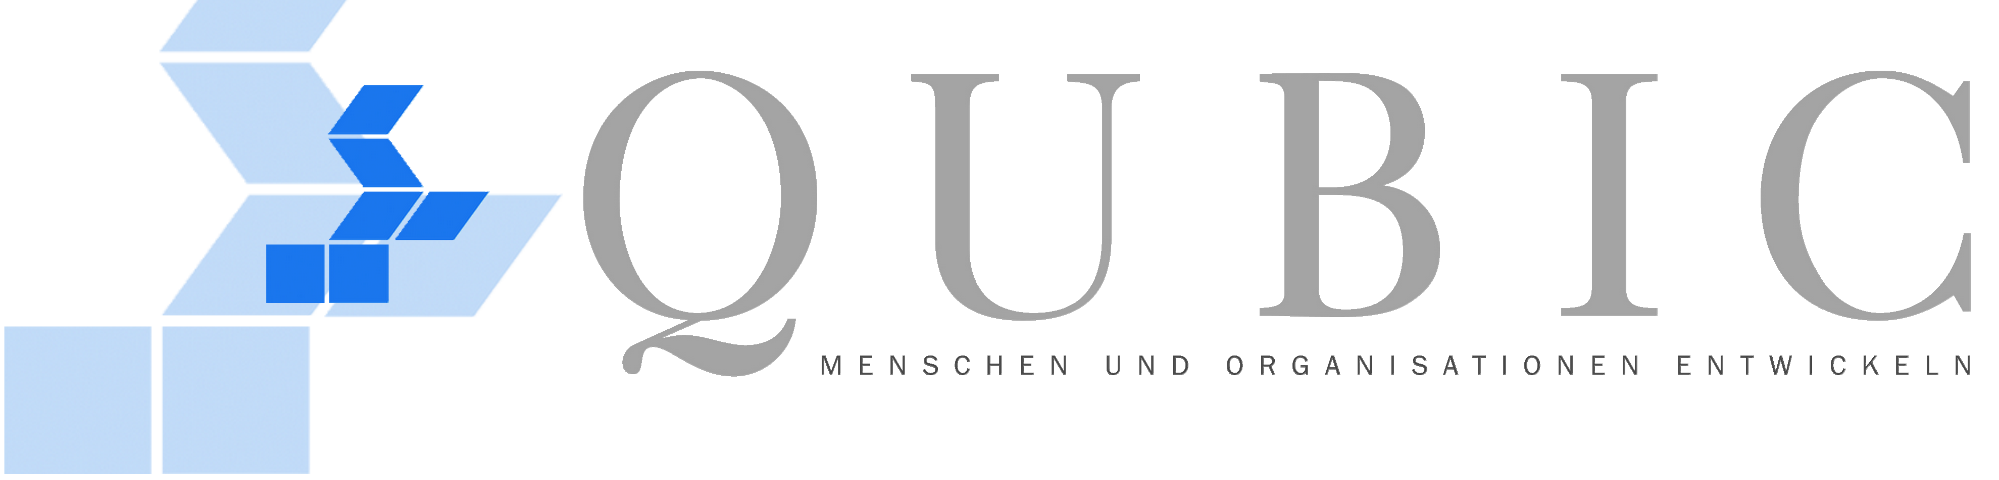 QUBIC Beratergruppe GmbH